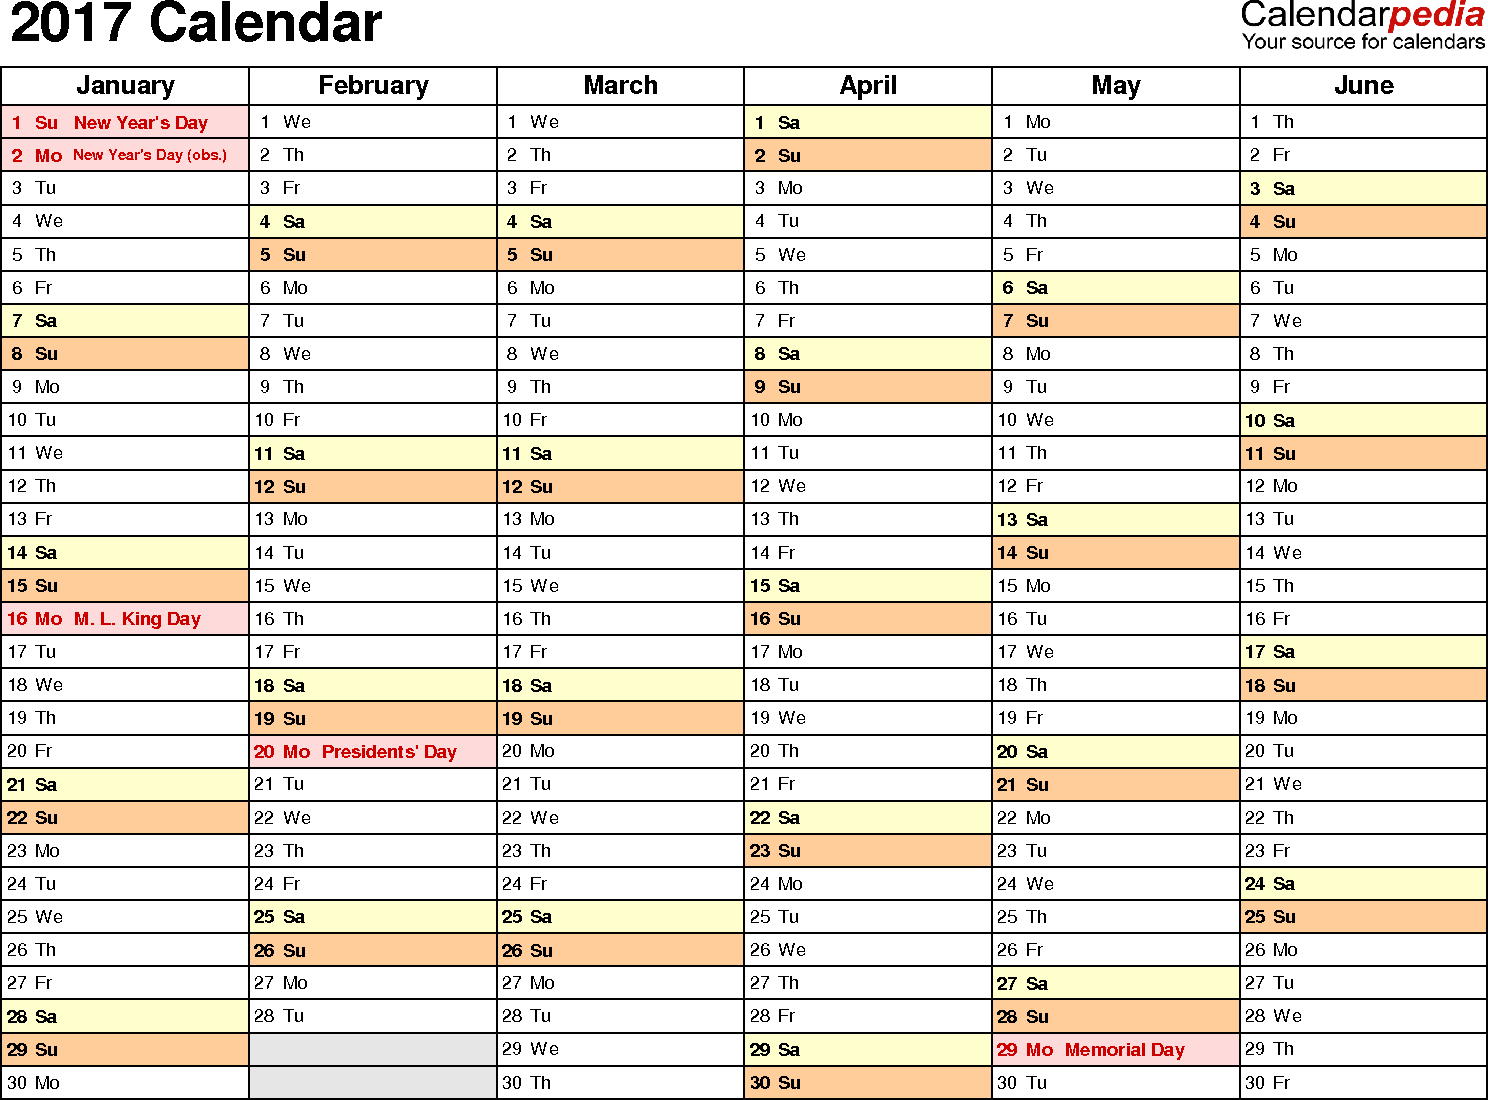 Ediblewildsus  Pretty  Calendar  Download  Free Printable Excel Templates Xls With Lovable Template   Calendar For Excel Months Horizontally  Pages Landscape Orientation With Cute Excel Logo Also Count In Excel In Addition How To Add Time In Excel And Cagr Formula In Excel As Well As Combine Two Columns In Excel Additionally Excel Microsoft From Calendarpediacom With Ediblewildsus  Lovable  Calendar  Download  Free Printable Excel Templates Xls With Cute Template   Calendar For Excel Months Horizontally  Pages Landscape Orientation And Pretty Excel Logo Also Count In Excel In Addition How To Add Time In Excel From Calendarpediacom